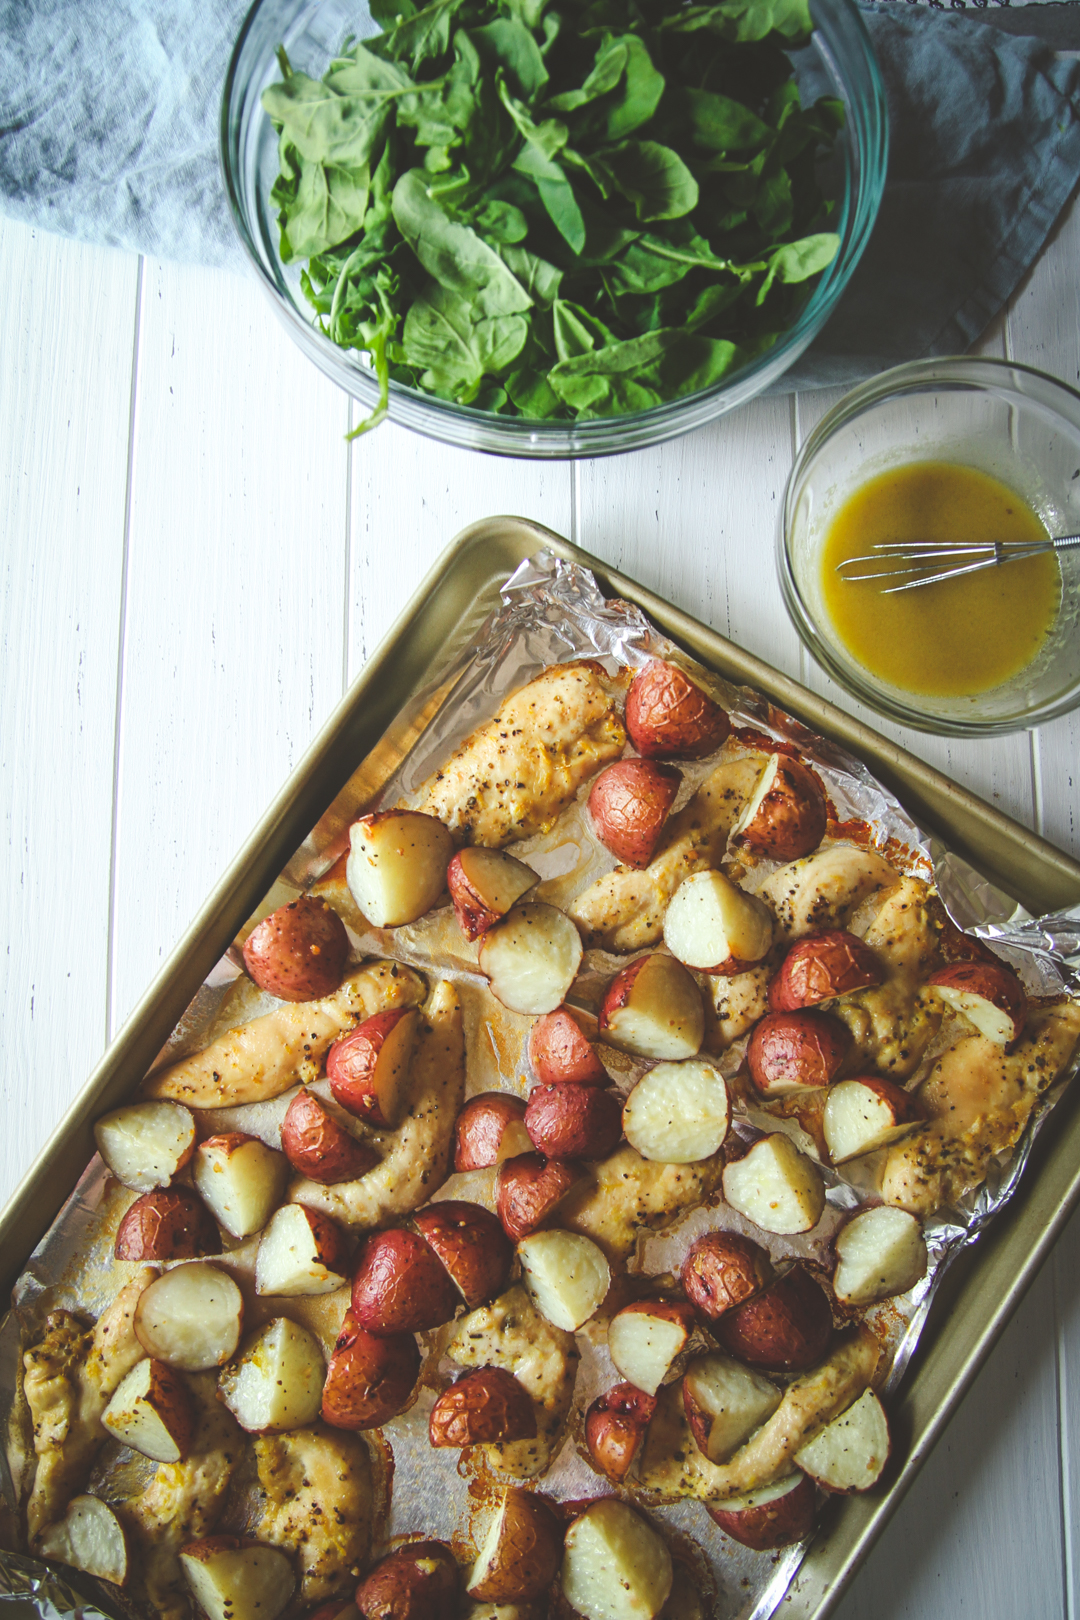 The best summer salad with roasted chicken and potatoes